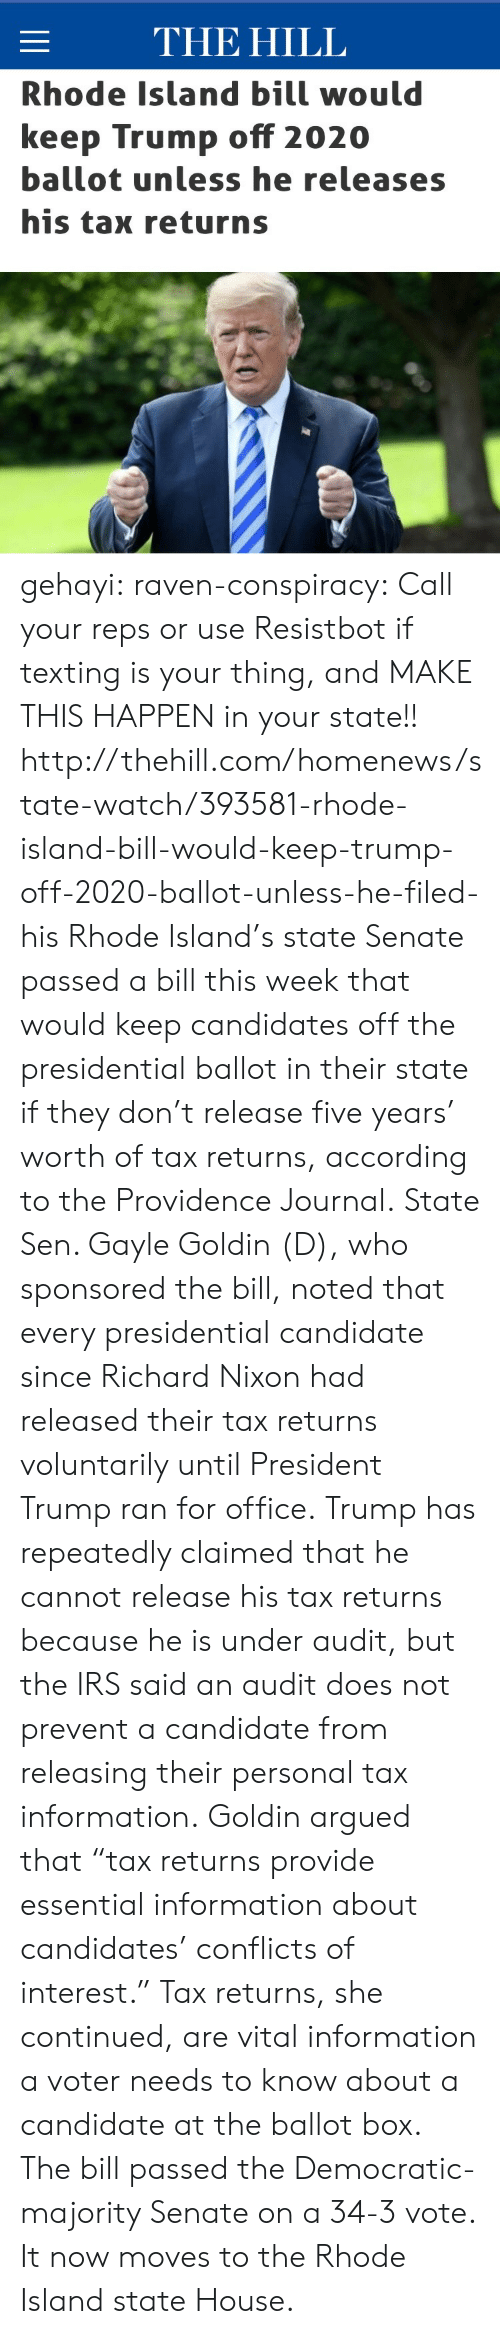 "Donald Trump, Irs, and News: THE HILL  Rhode Island bill would  keep Trump off 2020  ballot unless he releases  his tax returns gehayi:  raven-conspiracy:  Call your reps or use Resistbot if texting is your thing, and MAKE THIS HAPPEN in your state!!  http://thehill.com/homenews/state-watch/393581-rhode-island-bill-would-keep-trump-off-2020-ballot-unless-he-filed-his   Rhode Island's state Senate passed a bill this week that would keep candidates off the presidential ballot in their state if they don't release five years' worth of tax returns, according to the Providence Journal. State Sen. Gayle Goldin (D), who sponsored the bill, noted that every presidential candidate since Richard Nixon had released their tax returns voluntarily until President Trump ran for office. Trump has repeatedly claimed that he cannot release his tax returns because he is under audit, but the IRS said an audit does not prevent a candidate from releasing their personal tax information. Goldin argued that ""tax returns provide essential information about candidates' conflicts of interest."" Tax returns, she continued, are vital information a voter needs to know about a candidate at the ballot box. The bill passed the Democratic-majority Senate on a 34-3 vote. It now moves to the Rhode Island state House."